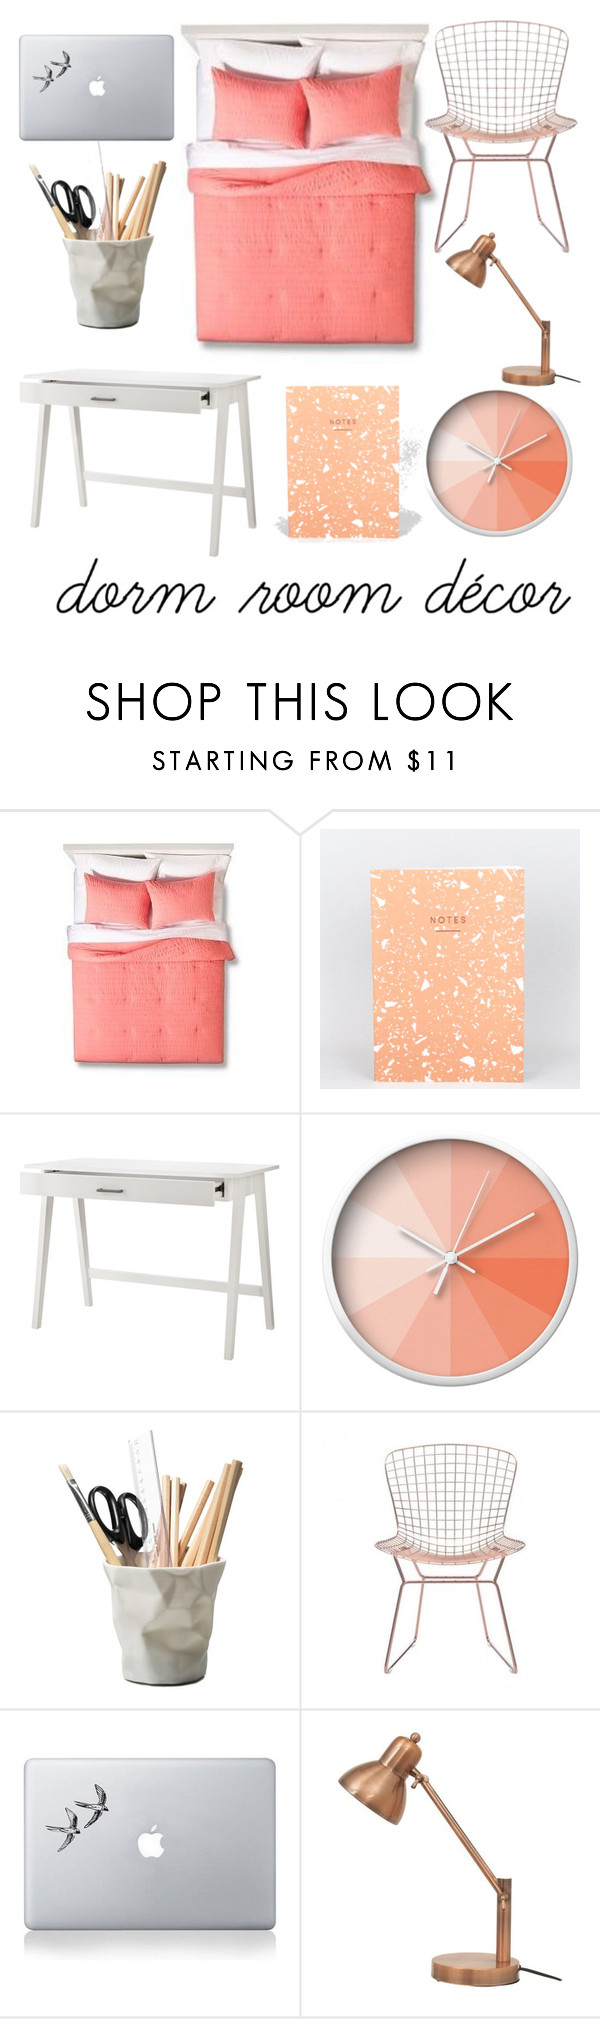 Threshold home decor shop for threshold home decor on polyvore -  Untitled 19 By Hsbeebe Liked On Polyvore Featuring Interior Interiors